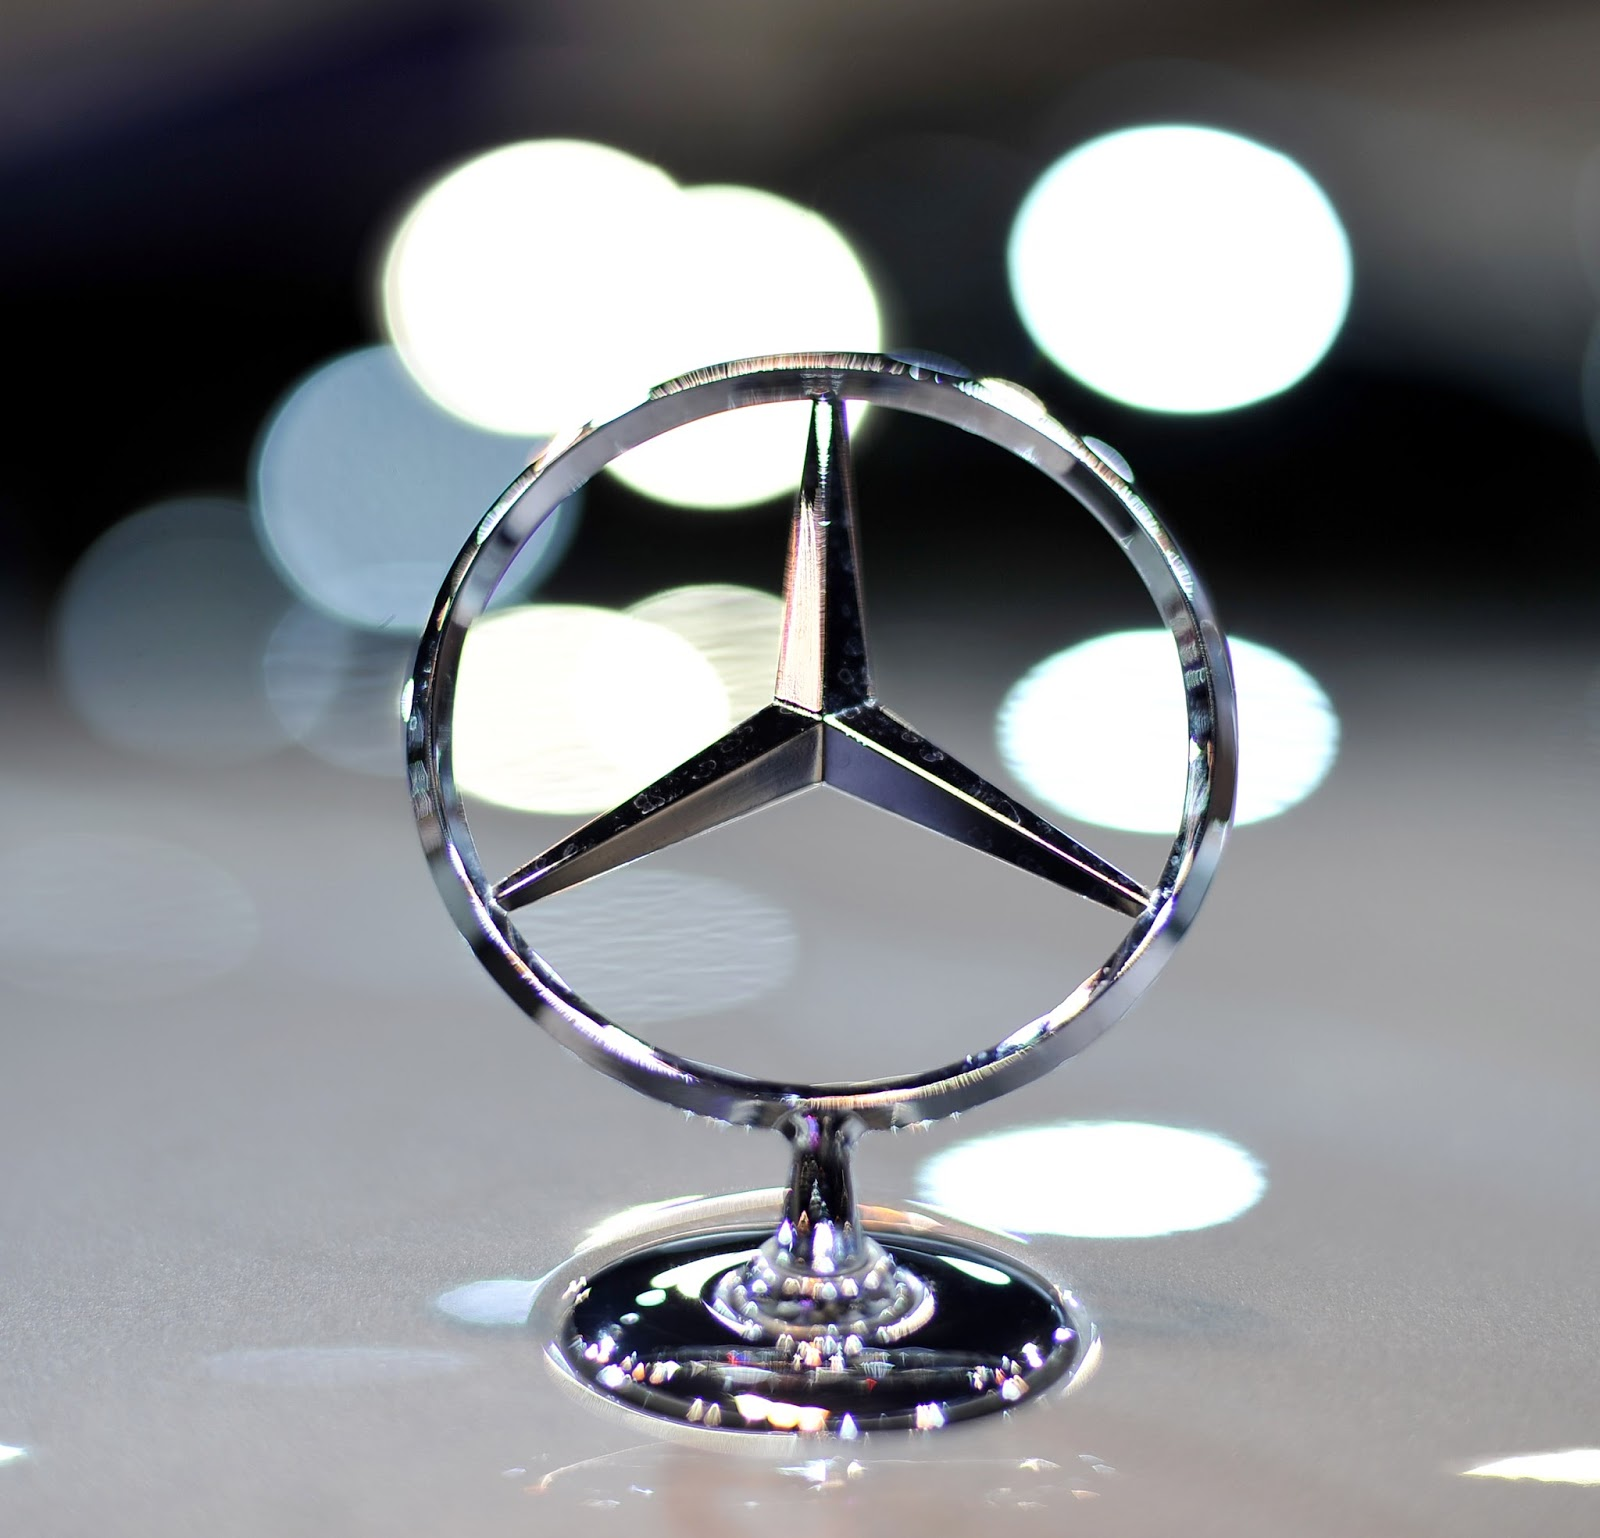 Mercedes benz logos trendy blogdaketrin for Mercedes benz name origin